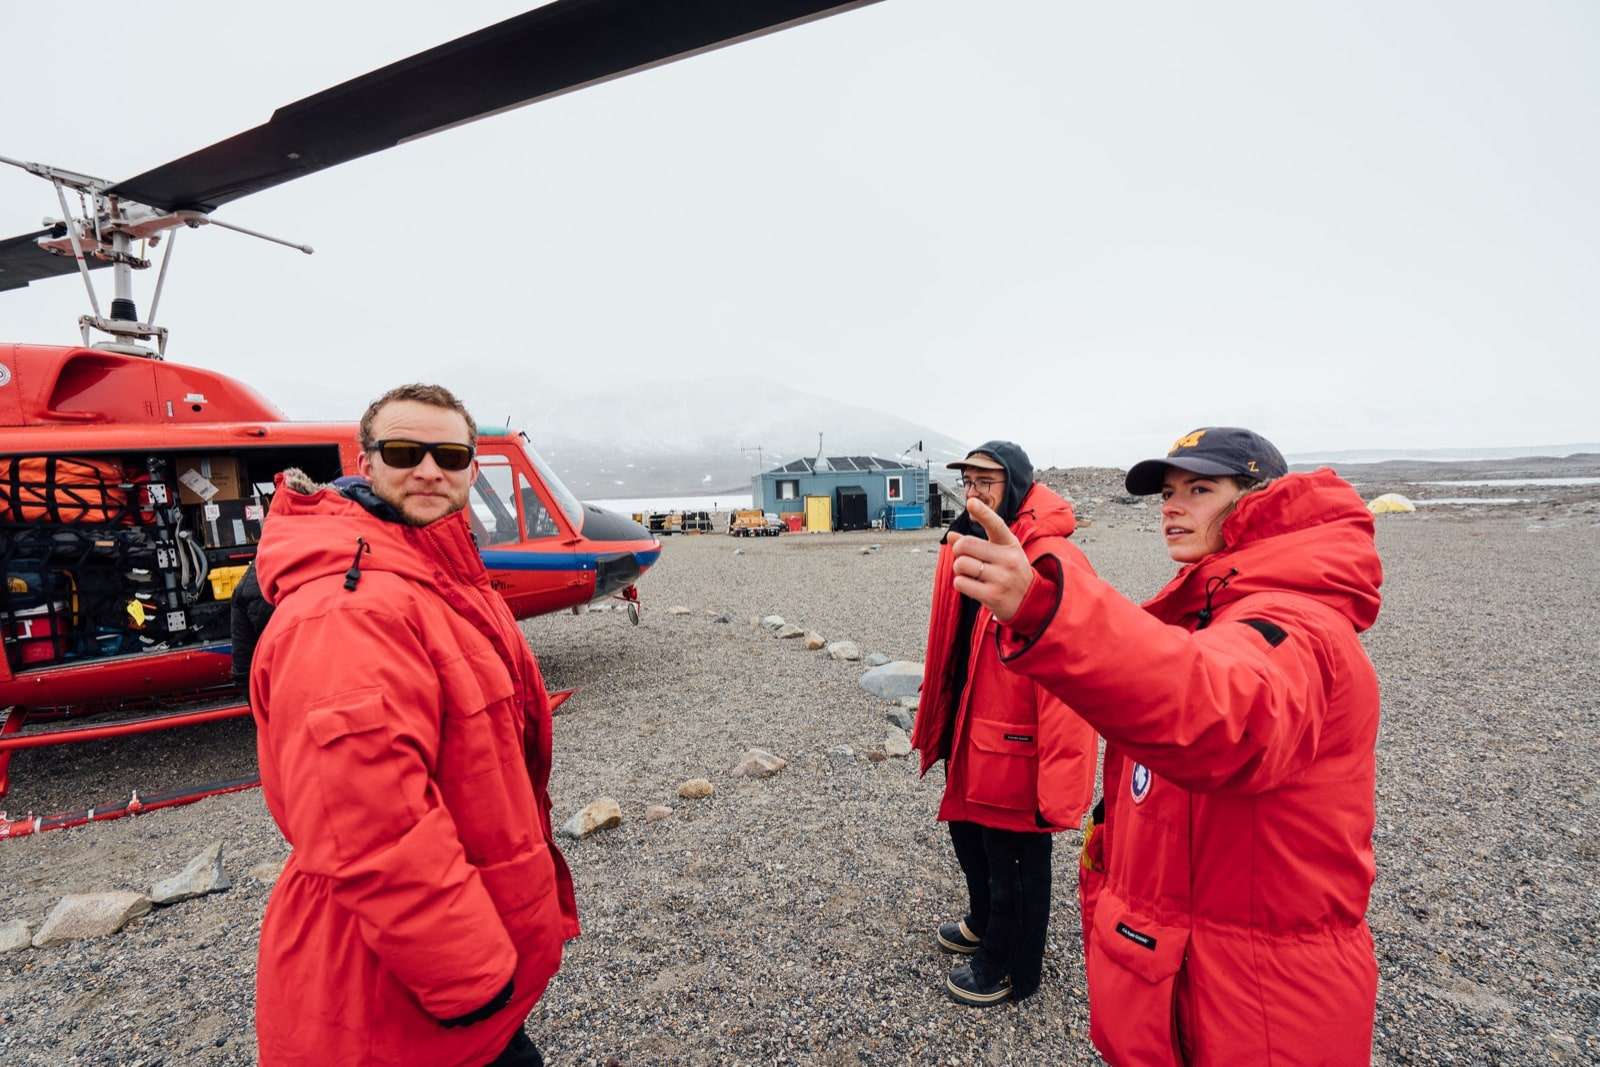 Field technicians wait for a load to be secured before departing to McMurdo Station. Photo by Ariel Zych